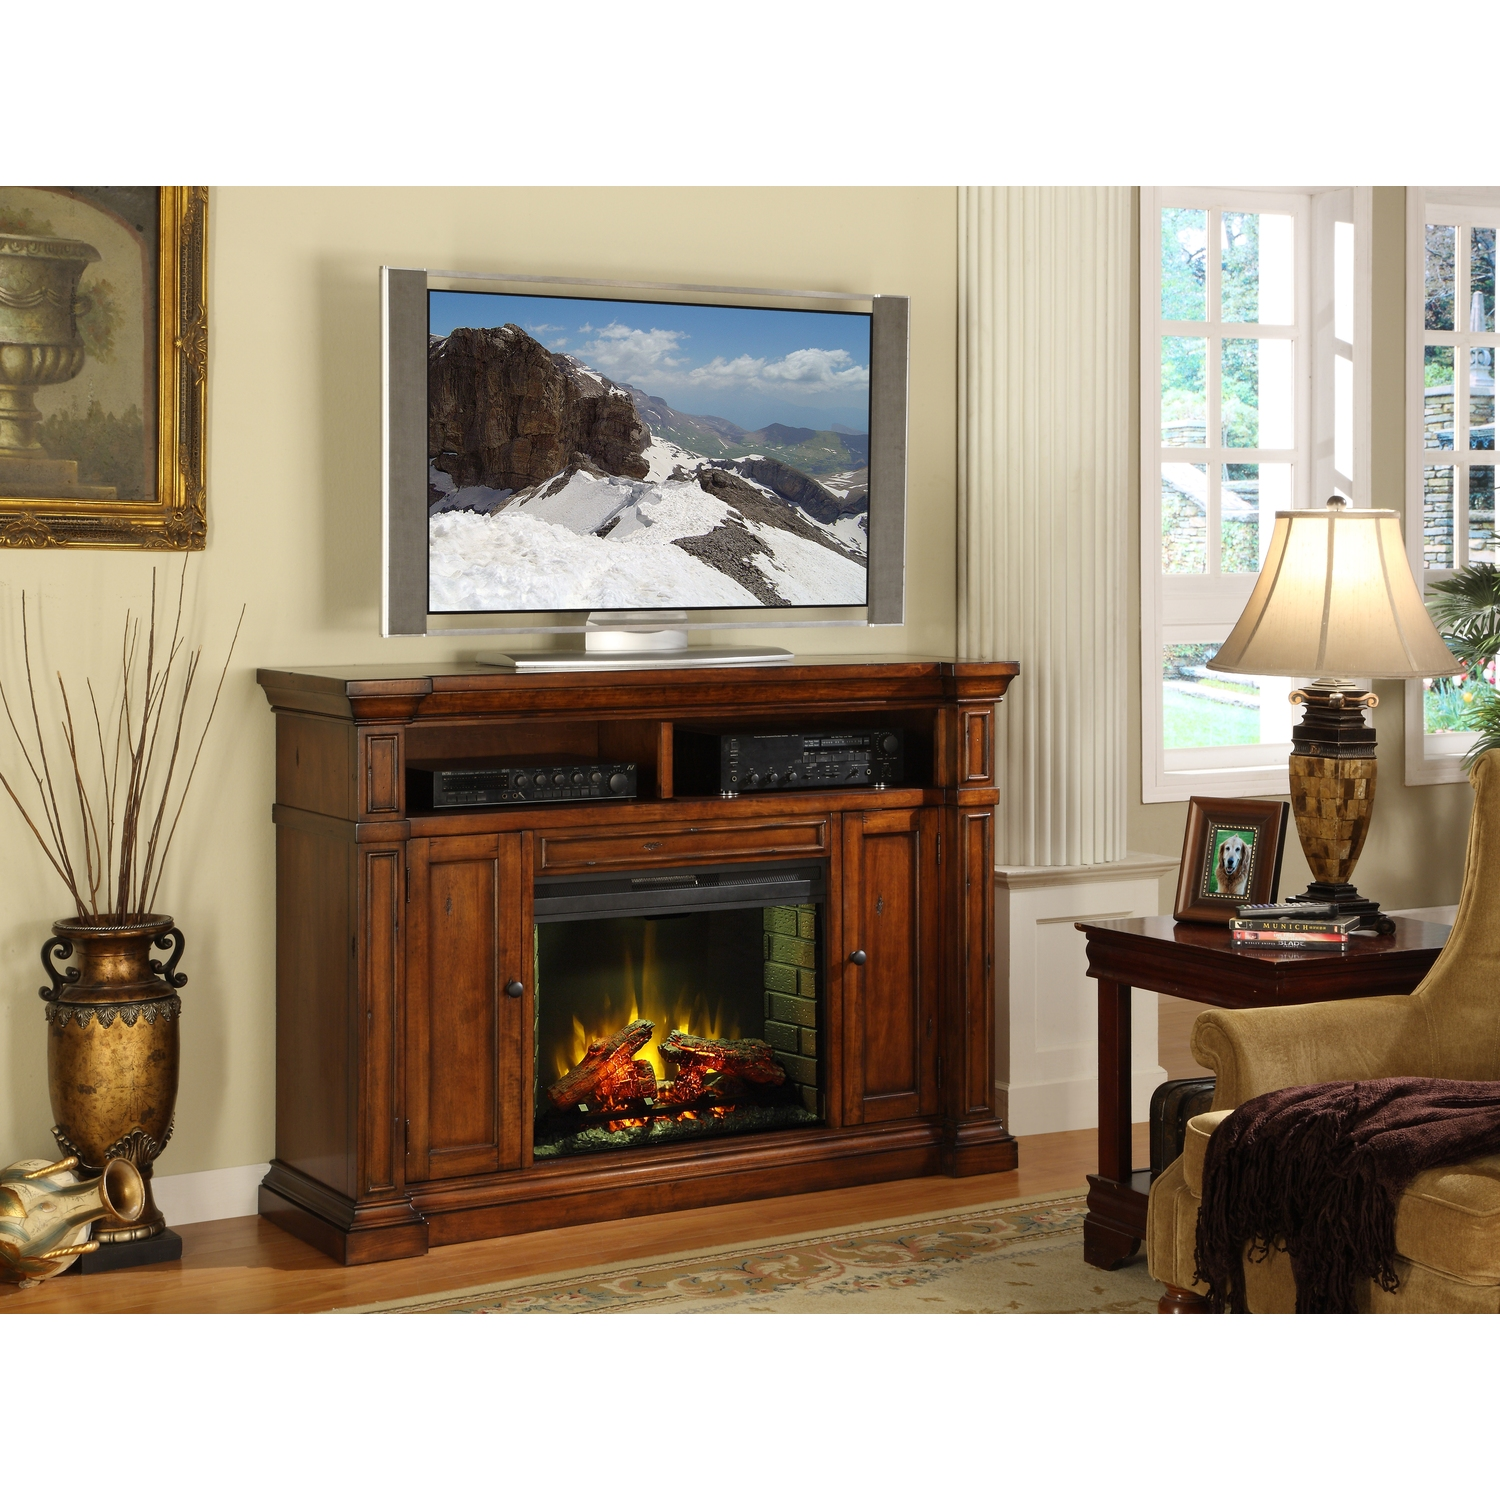 Berkshire Fireplace Media Center $1183 29